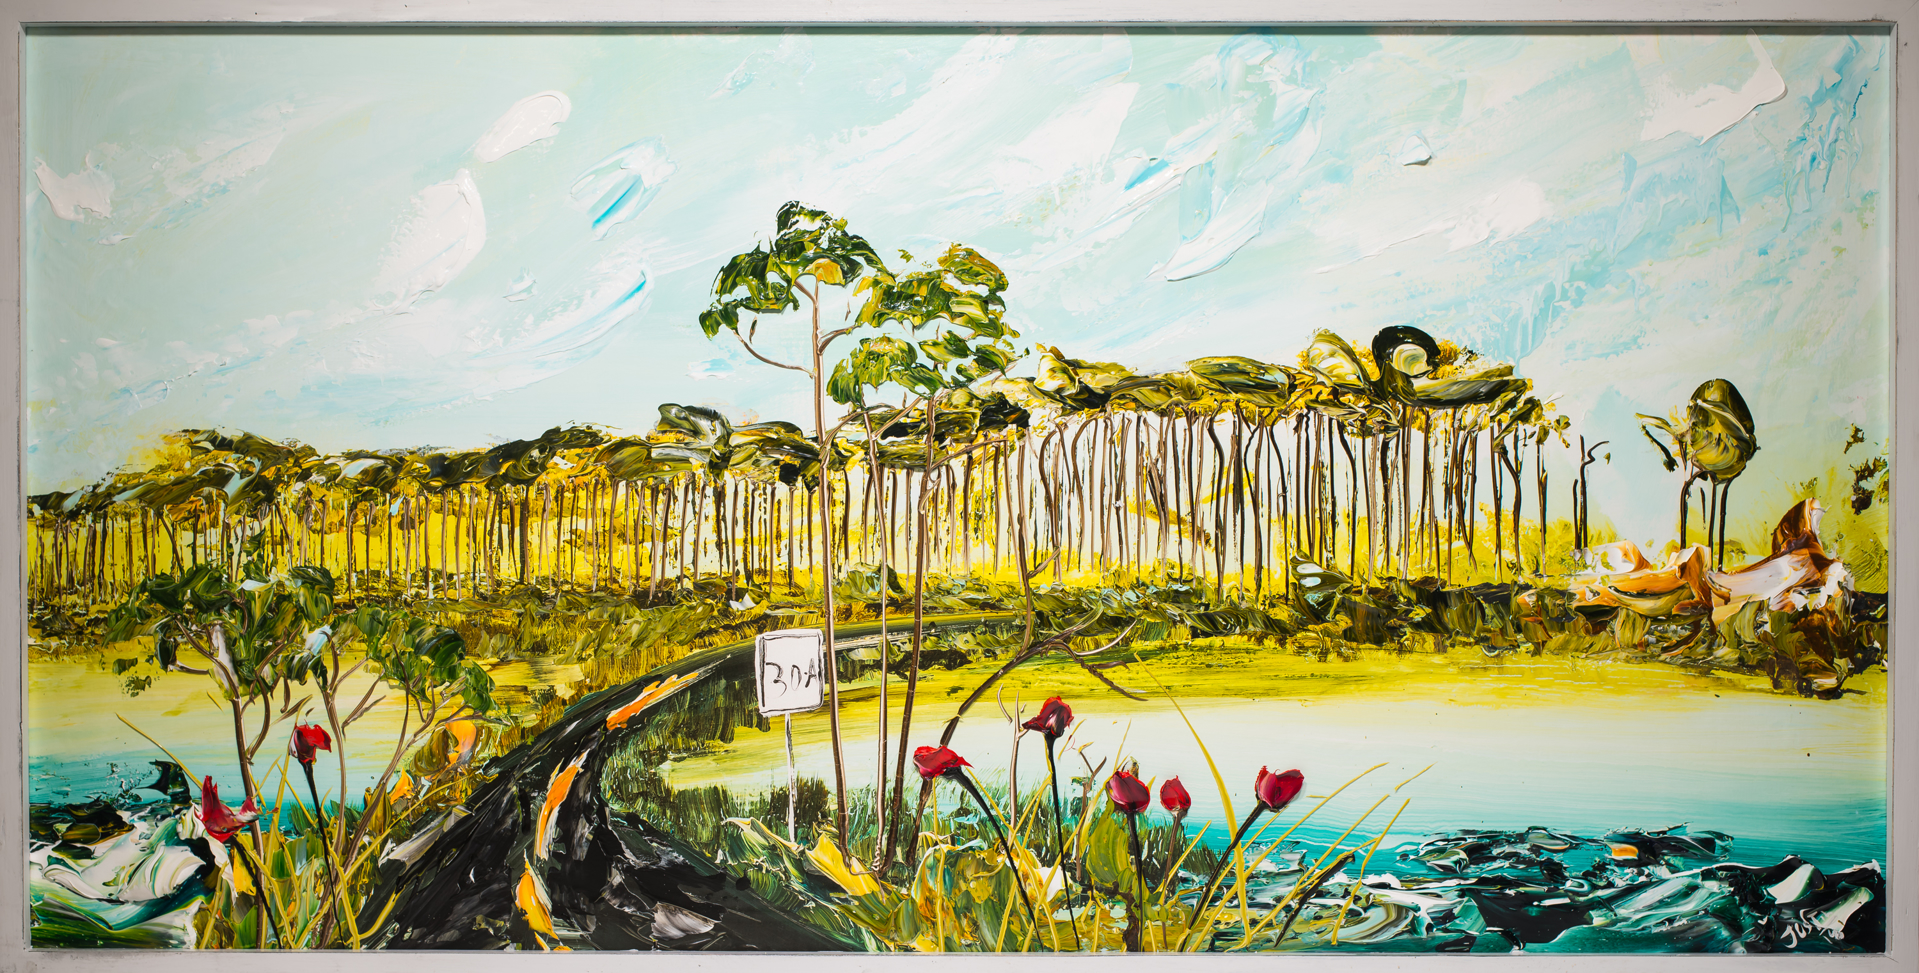 30A LAKESCAPE HPAE 2/50-72x36-2018-.25FR2 by Justin Gaffrey